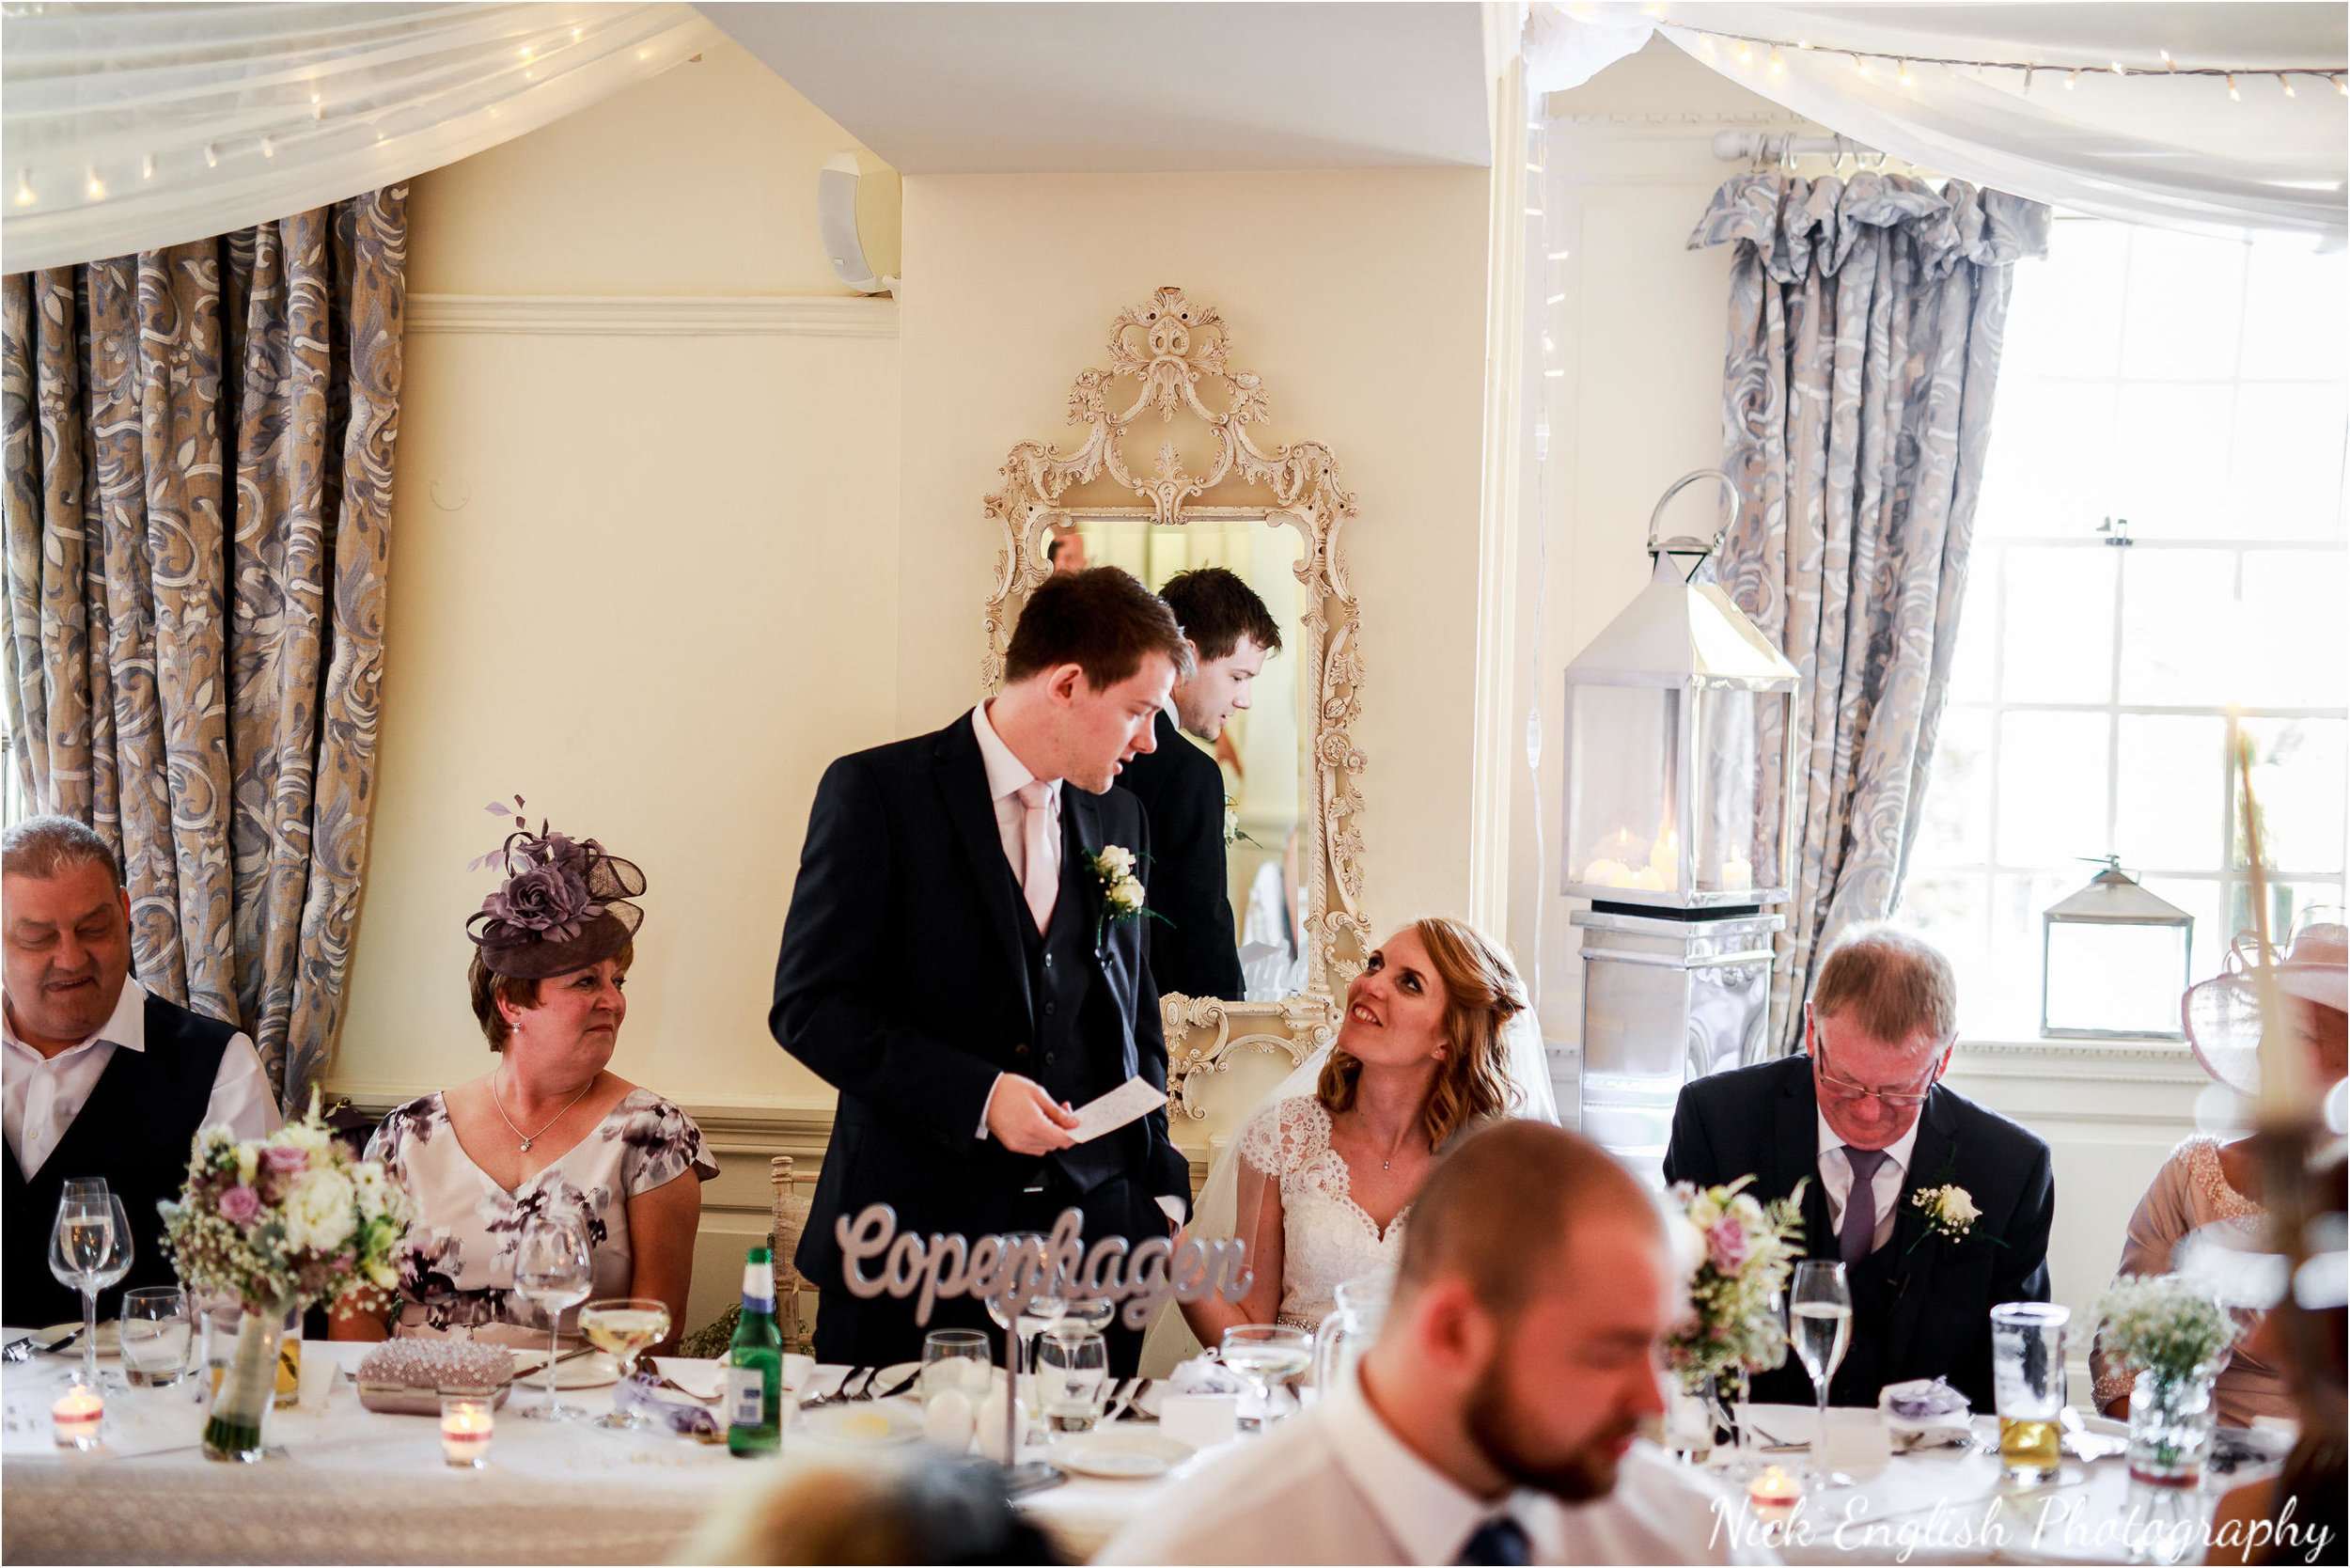 Alison James Wedding Photographs at Eaves Hall West Bradford 178jpg.jpeg